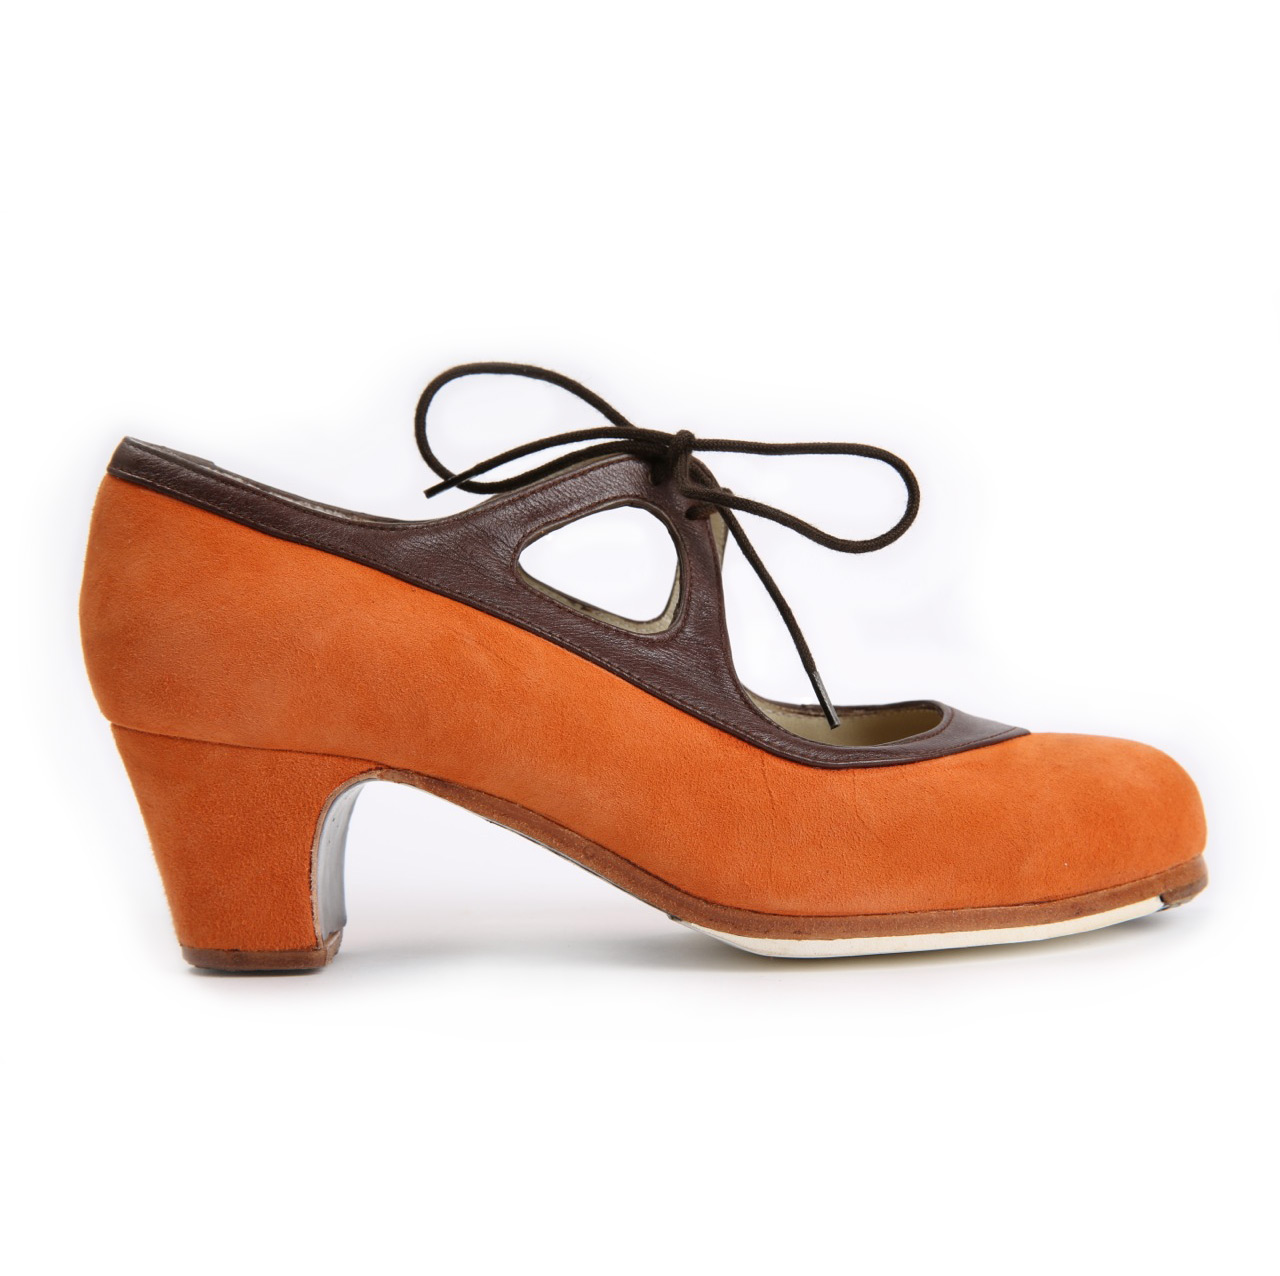 Flamenco dance Shoe Candor Suède Orange/Brown